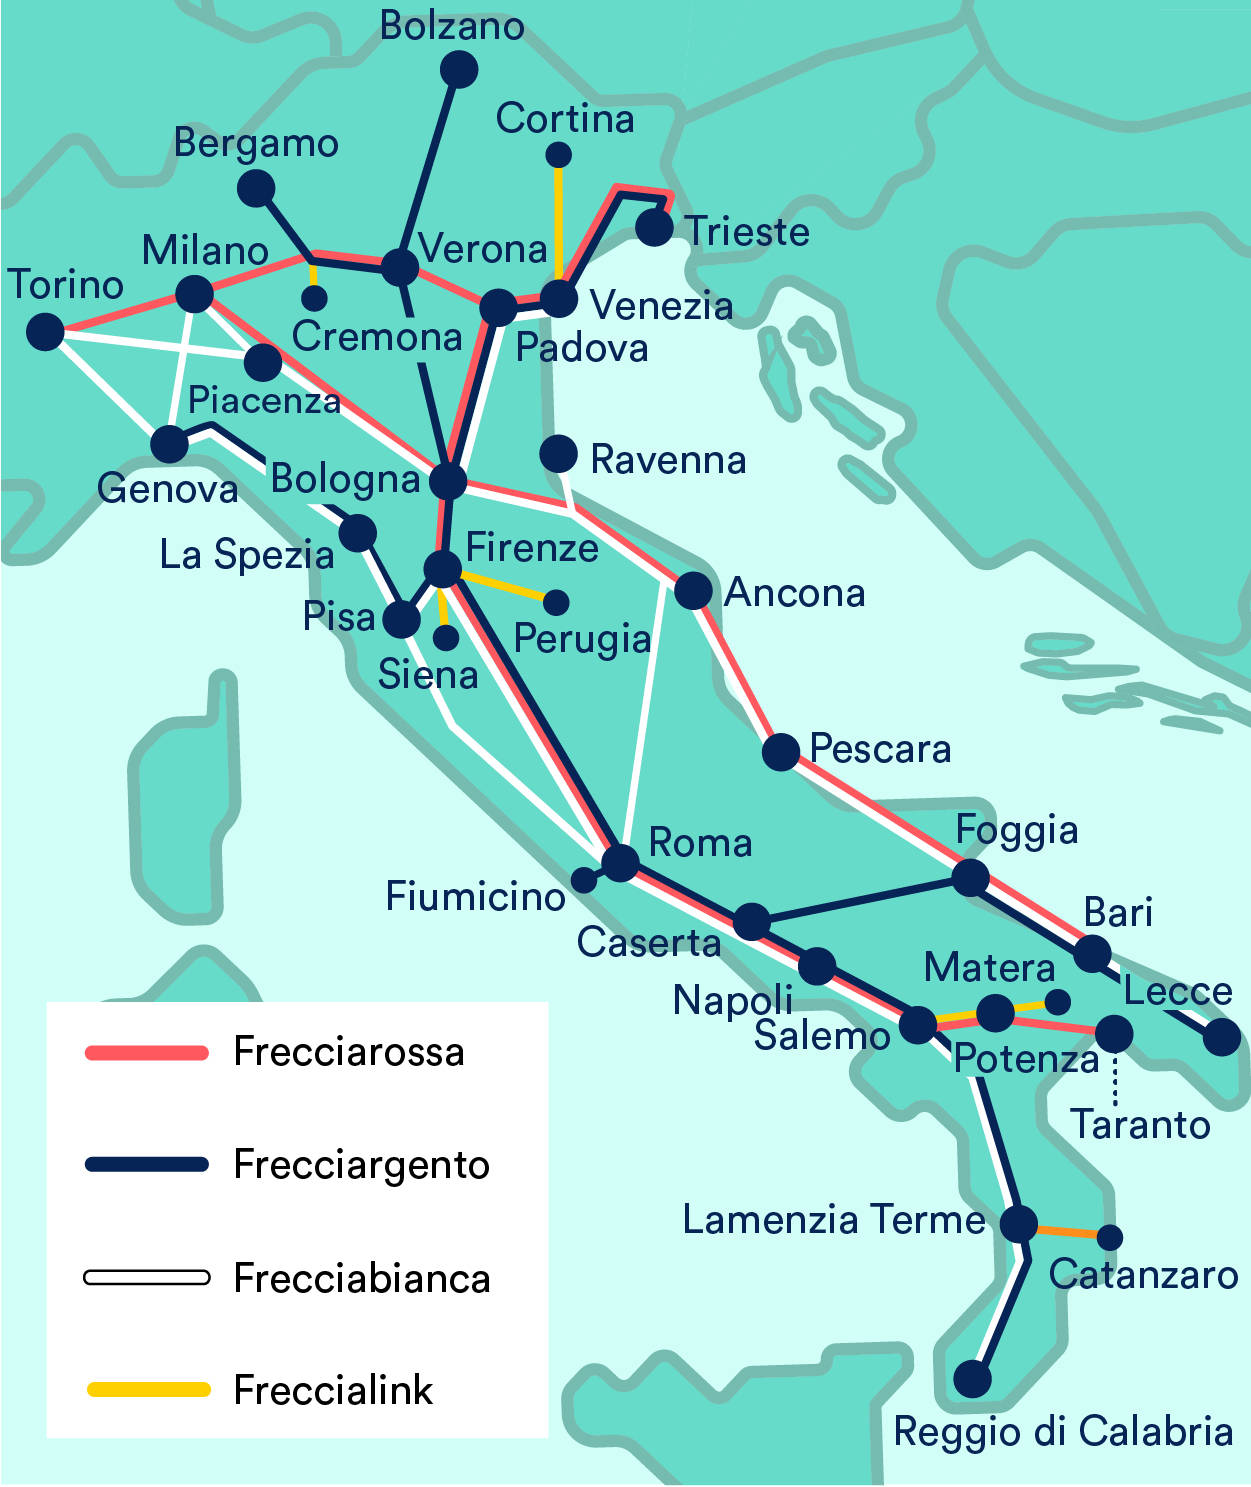 Train Map Of Italy Cities.The Train Line Italy How To Buy Train Tickets In Italy